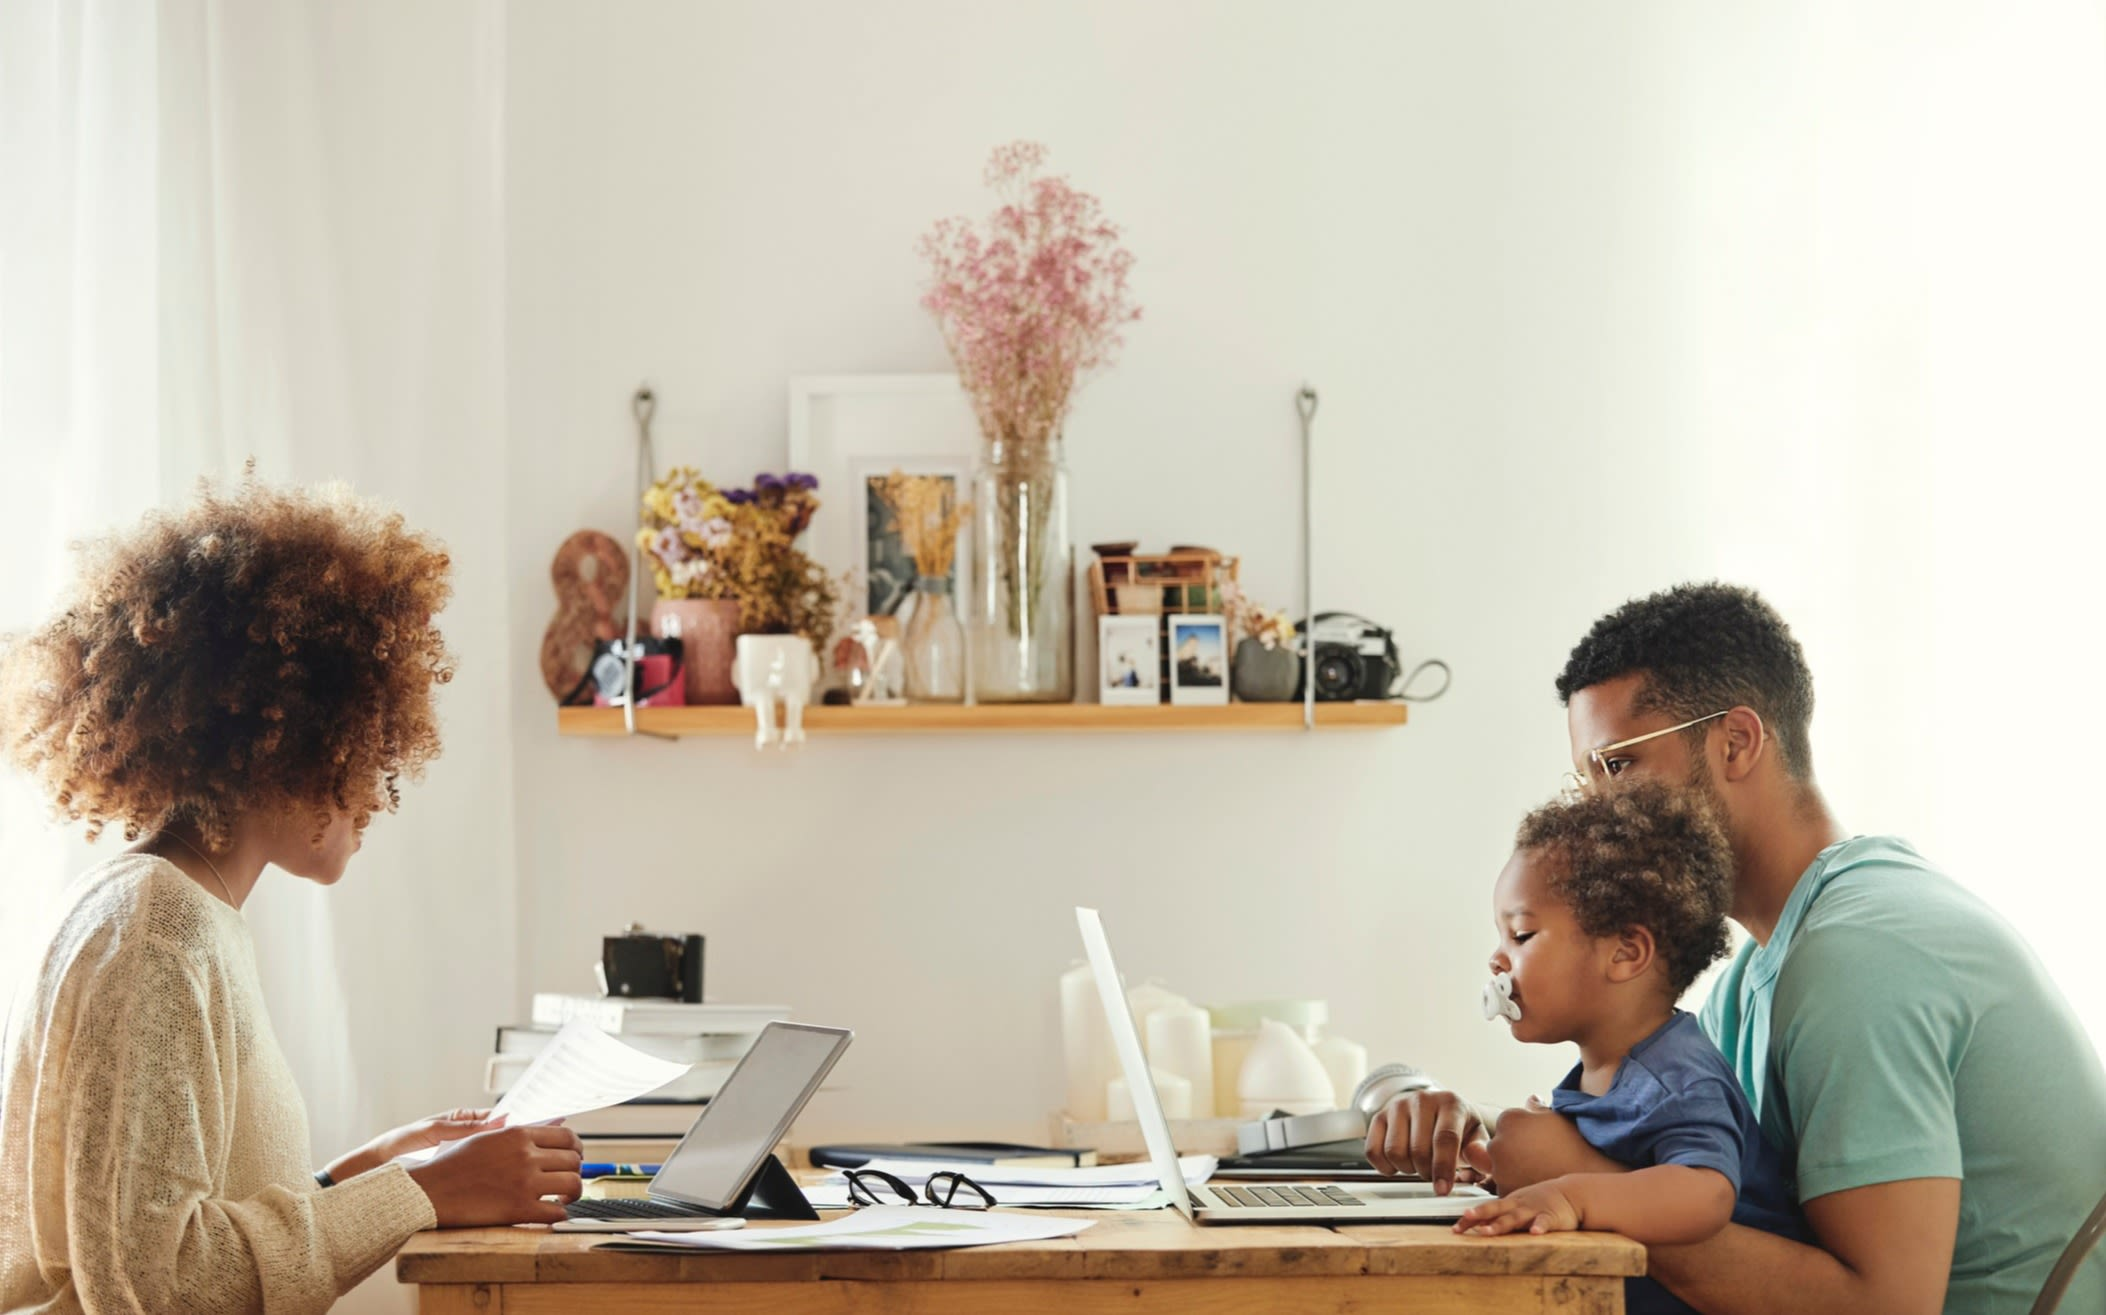 A woman and a man working at a table on laptops. The man has a young child on his lap